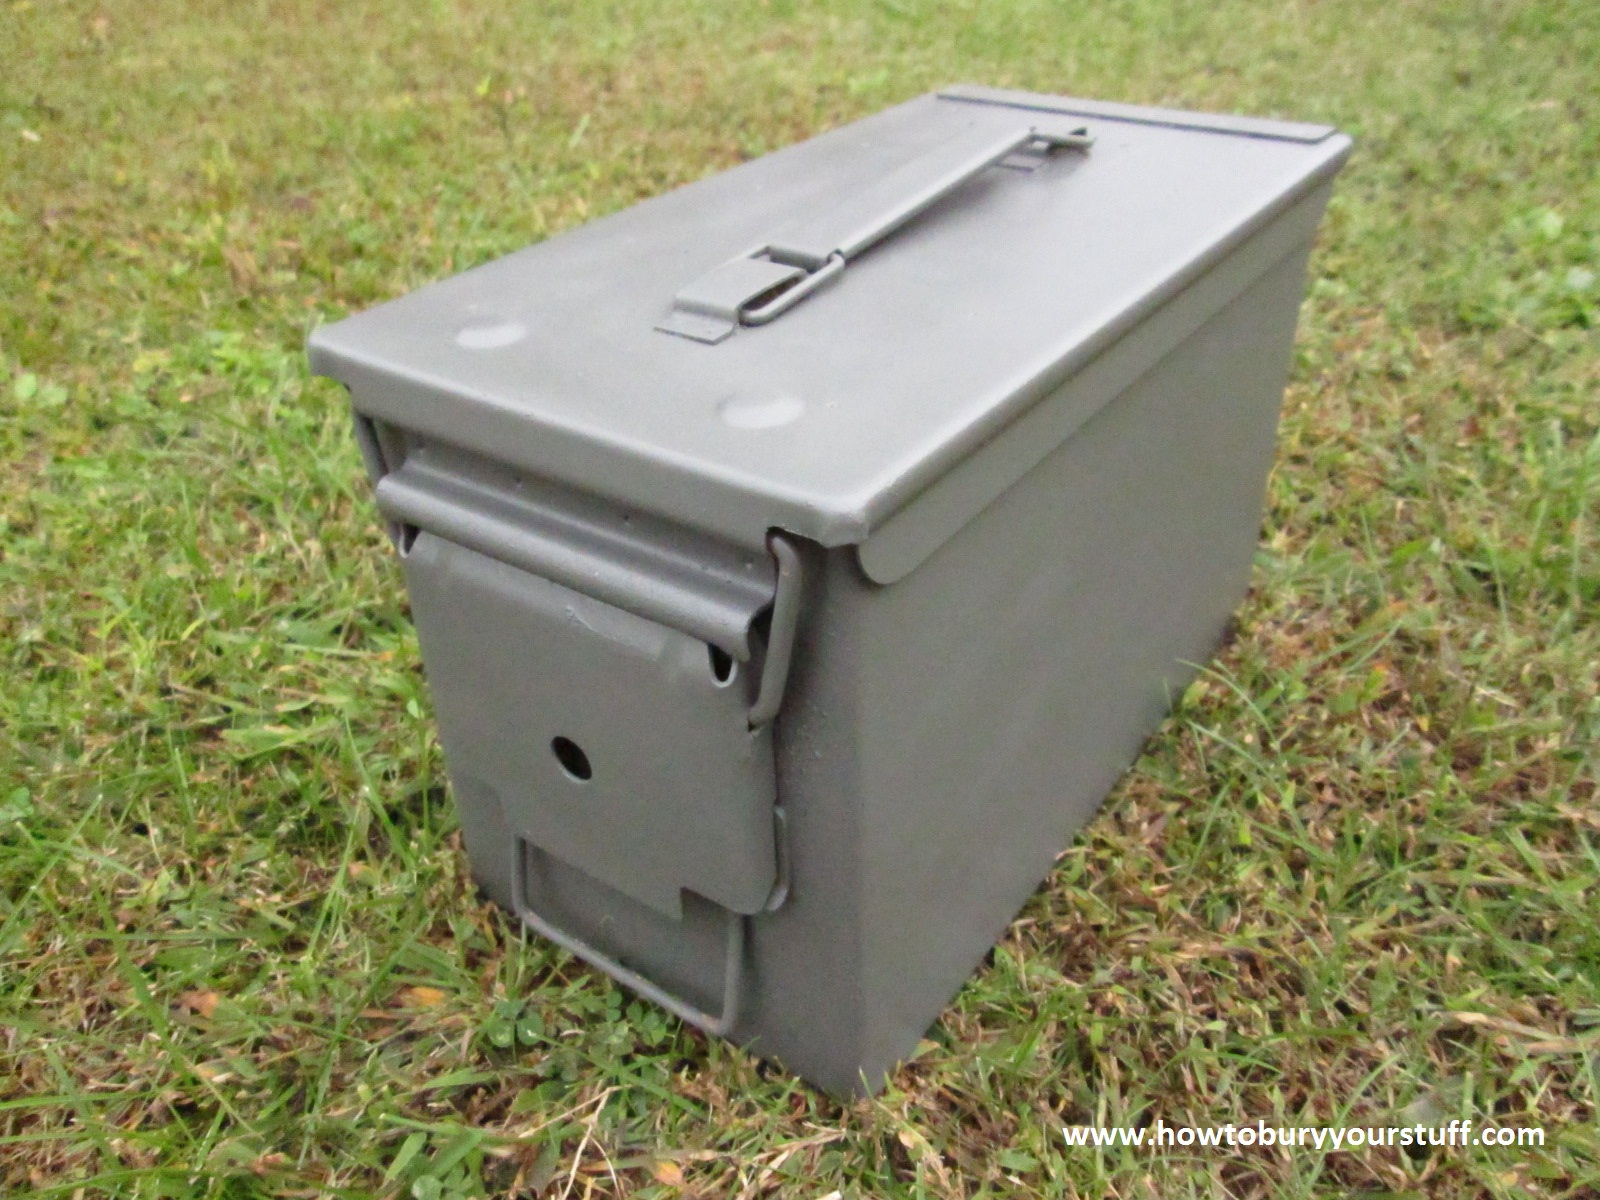 Guide to Military Surplus Ammo Cans - How To Bury Your Stuff 42c0859095f